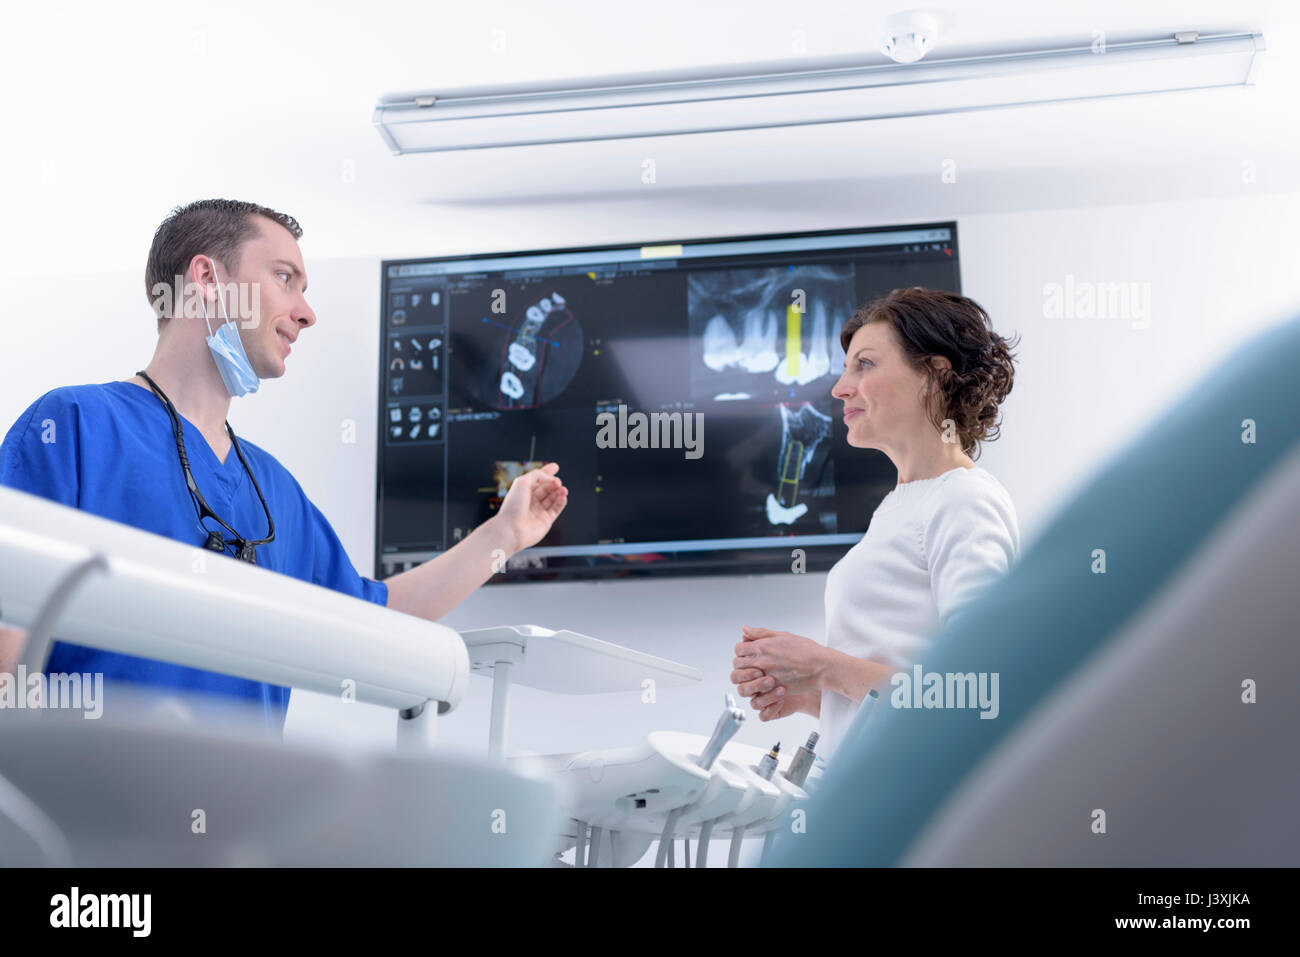 Dentist showing x-rays on screen to patient in dental surgery - Stock Image